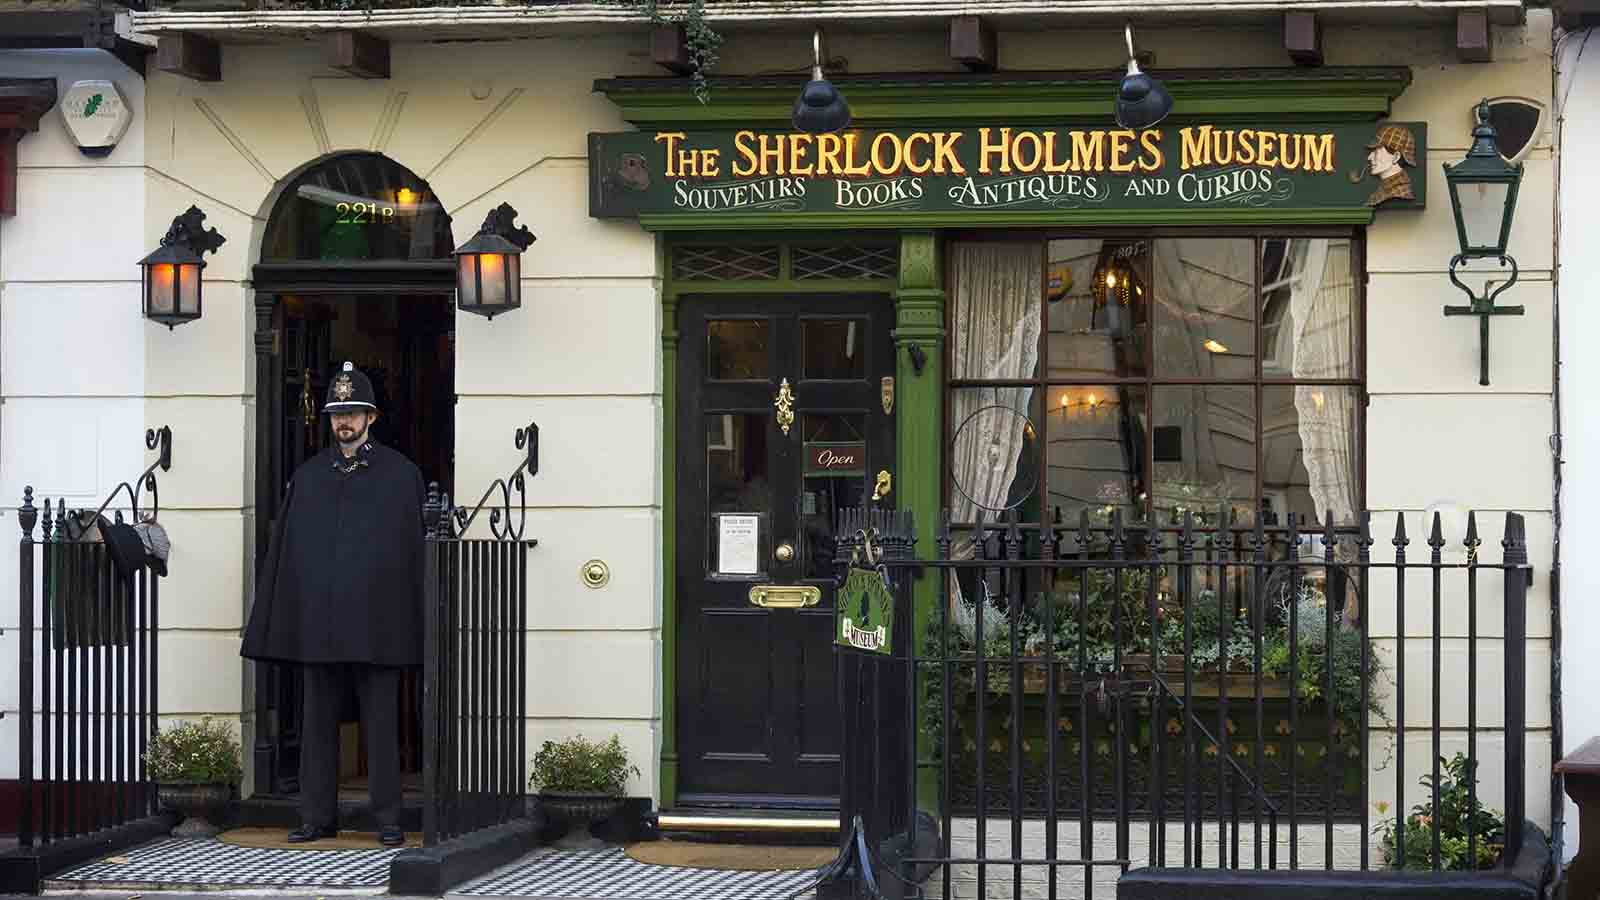 Outside of 221b Baker Street and the Sherlock Holmes Museum